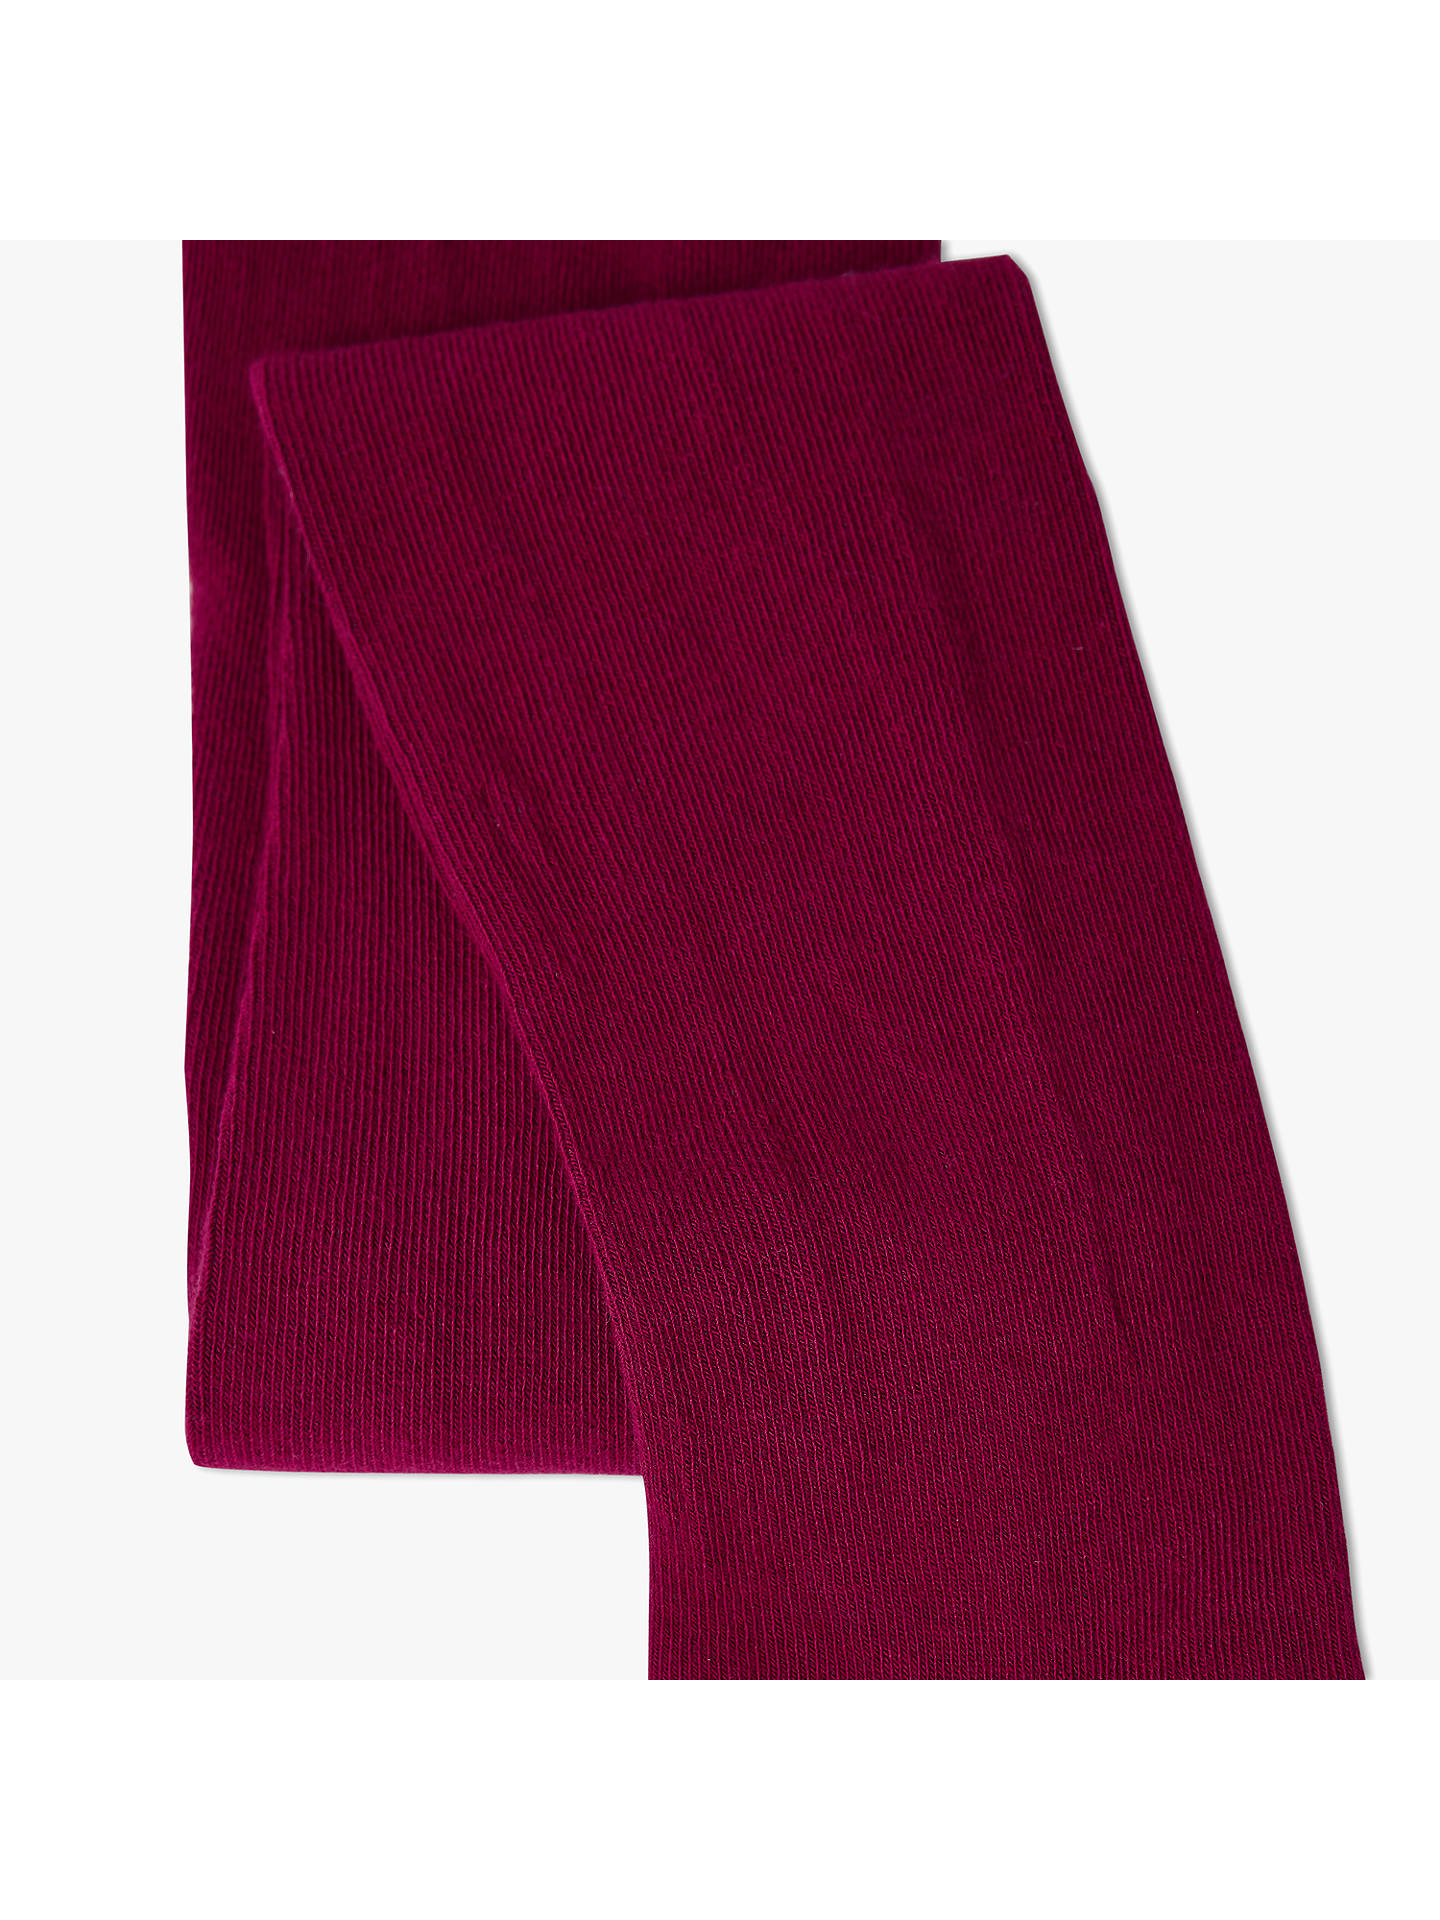 BuyJohn Lewis & Partners Girls' Single Tights, Berry, 2-3 years Online at johnlewis.com